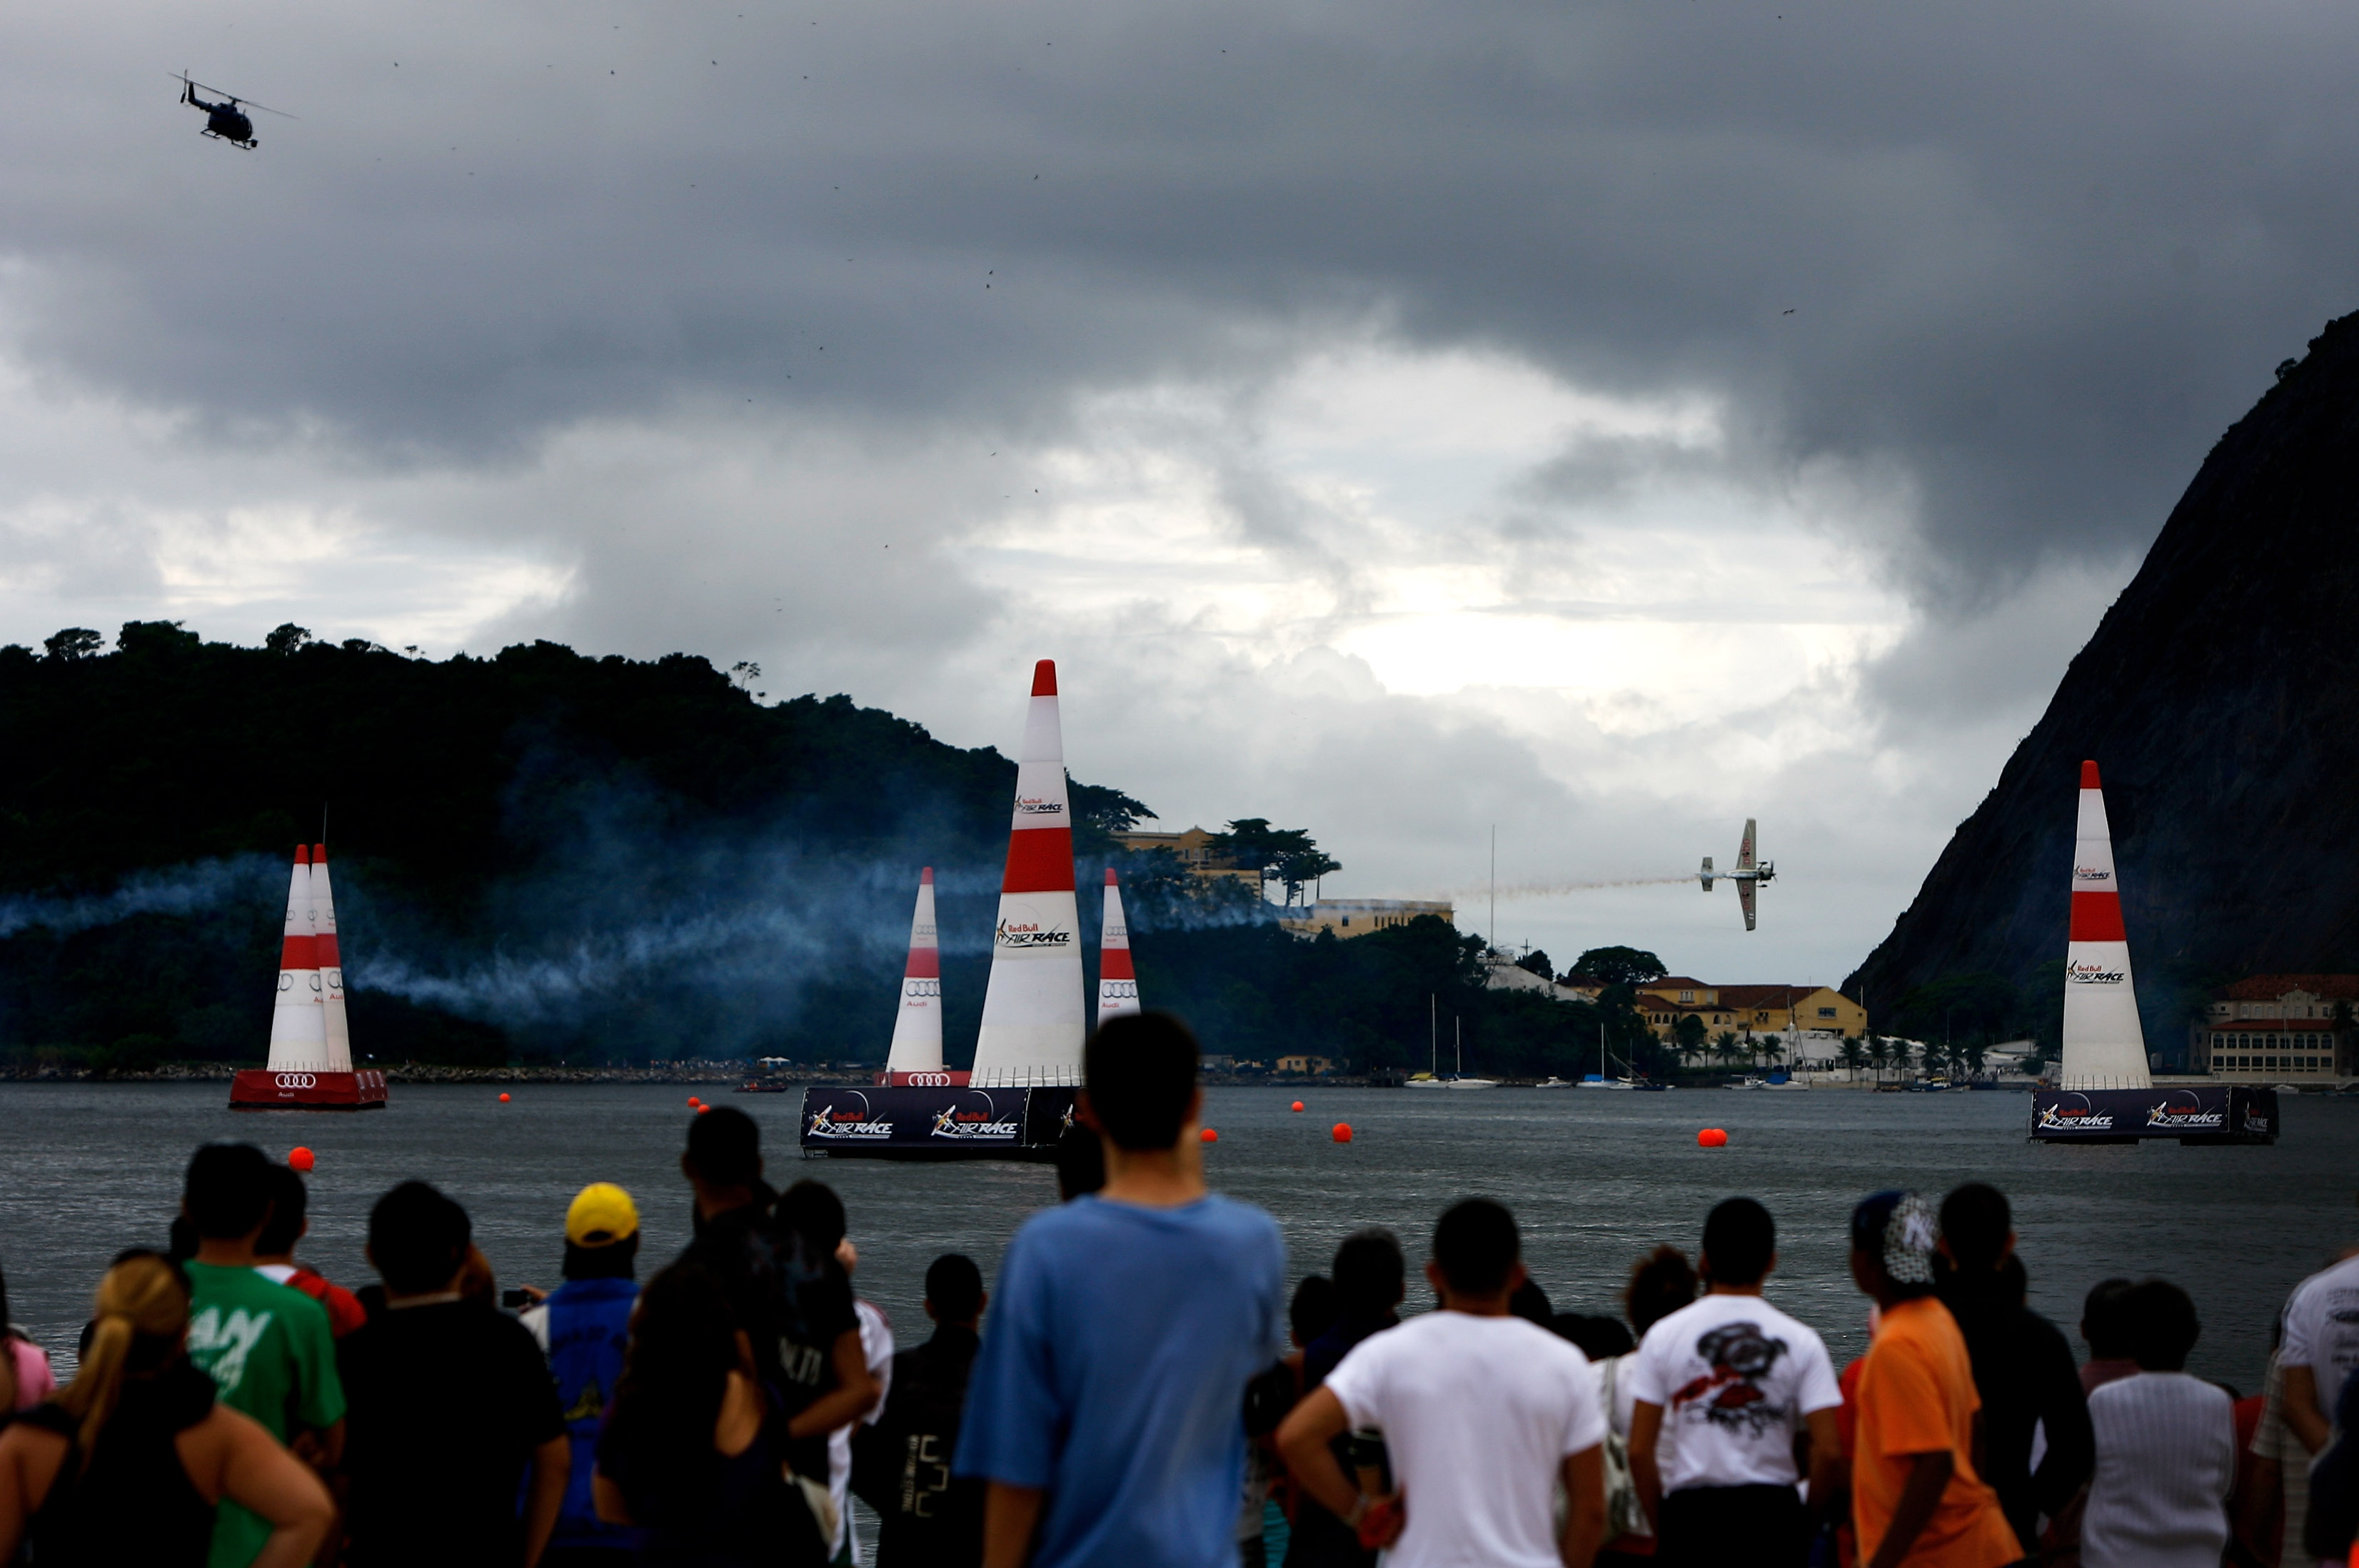 Aeroplans - Yoshihide Muroya le jour de la course by Dean  Mouhtaropoulos / Getty Images for Red Bull Air Race